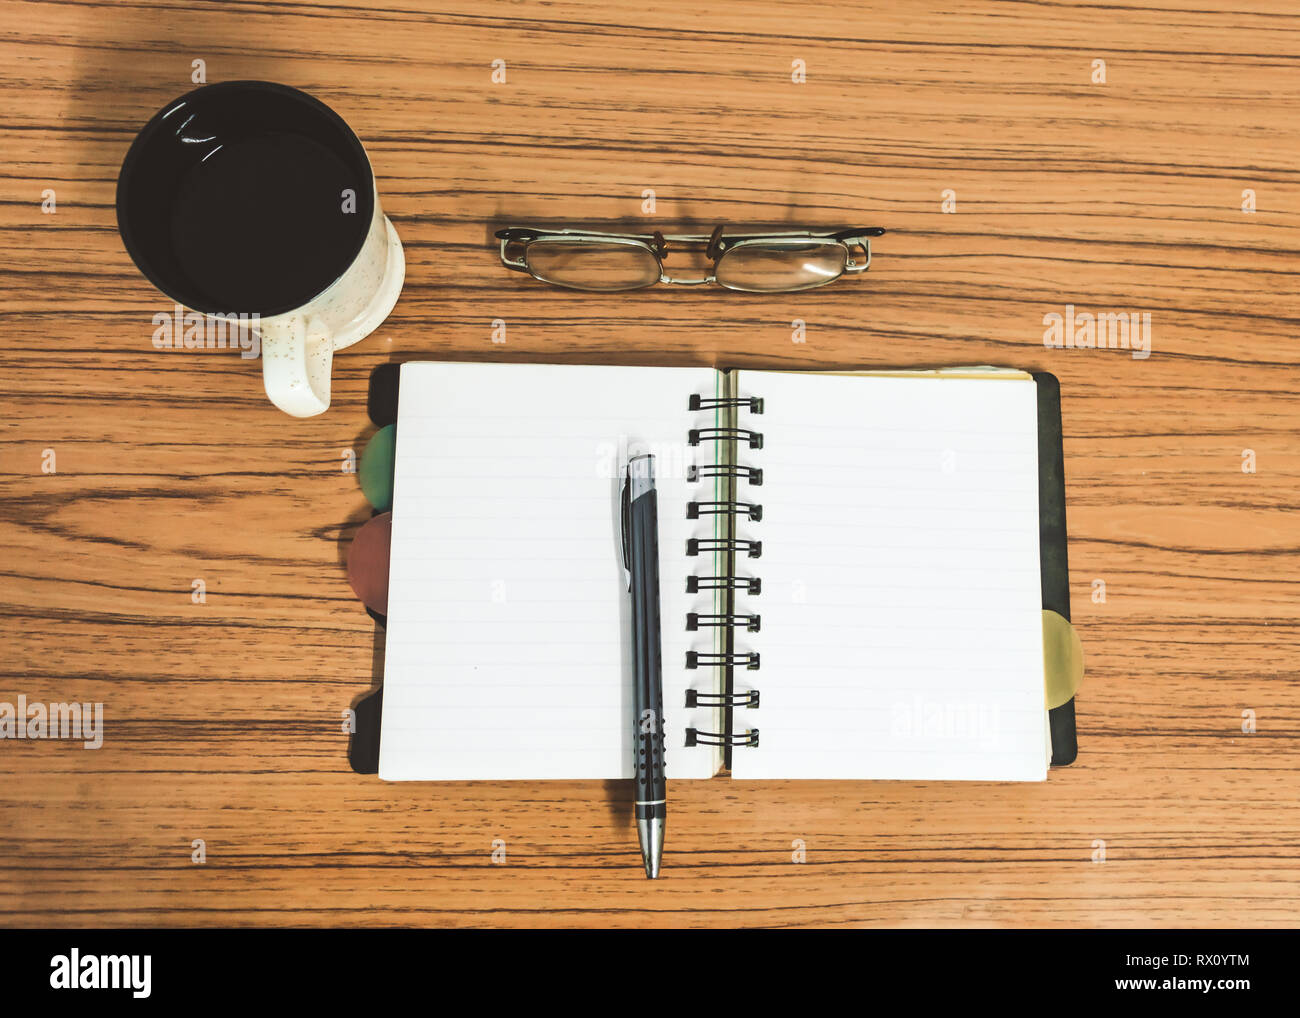 Desk with open notebook with blank pages, eye glasses, pen and a cup of coffee. Top view with copy space. Business still life concept with office stuf - Stock Image